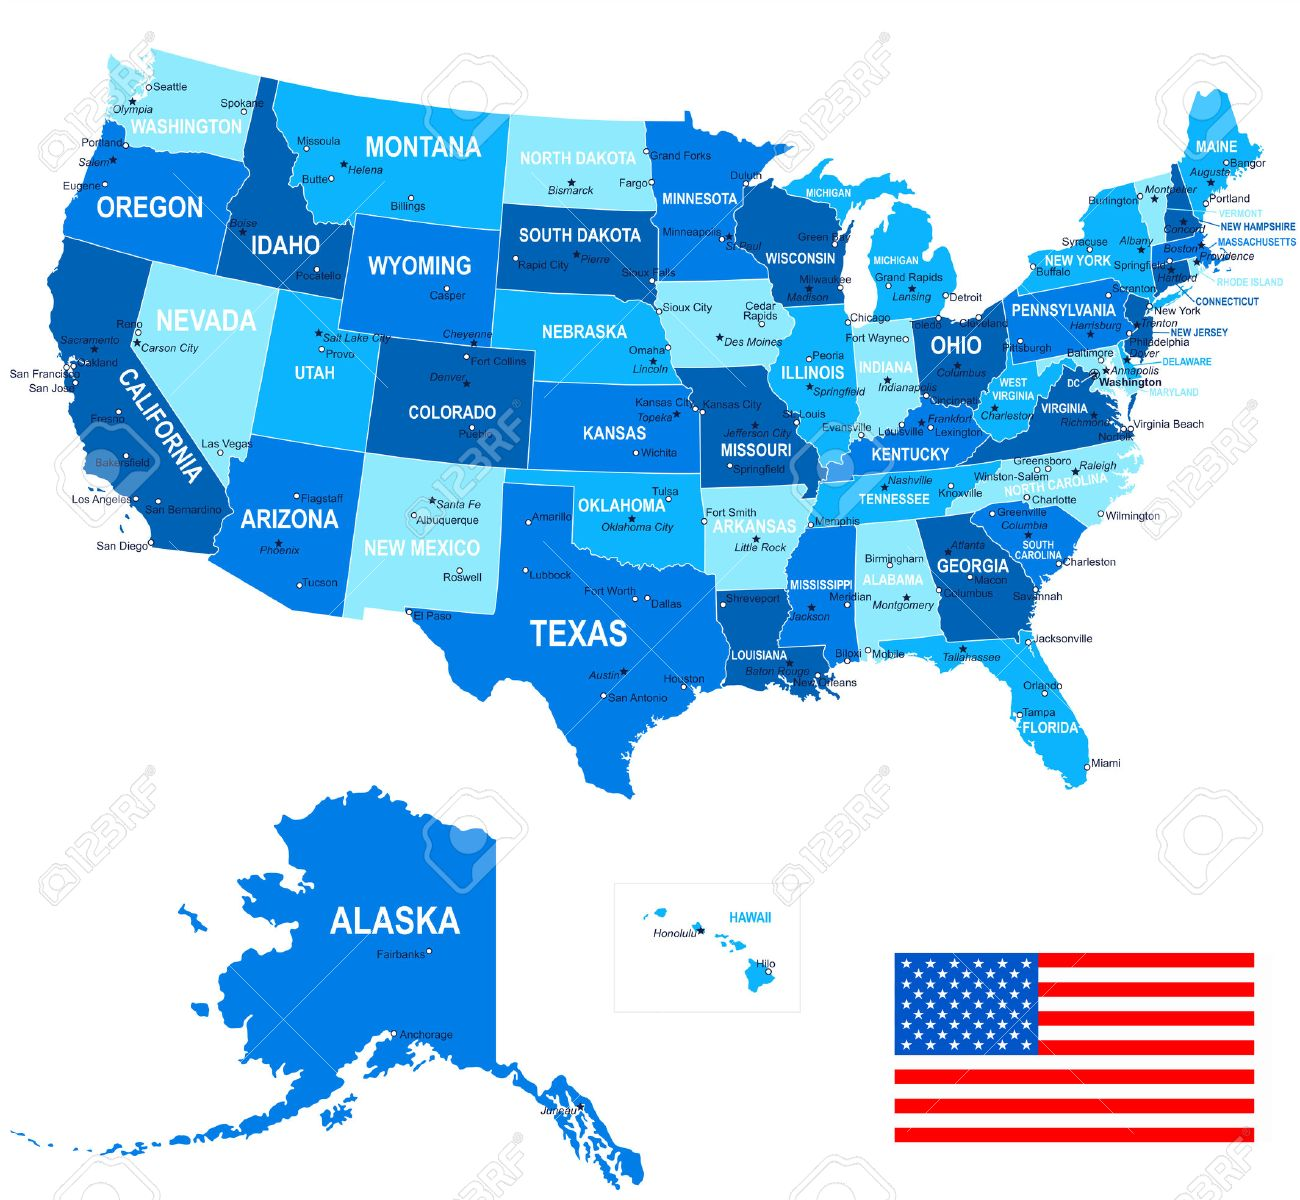 United States USA Map Flag And Navigation Icons Illustration - States of the usa map